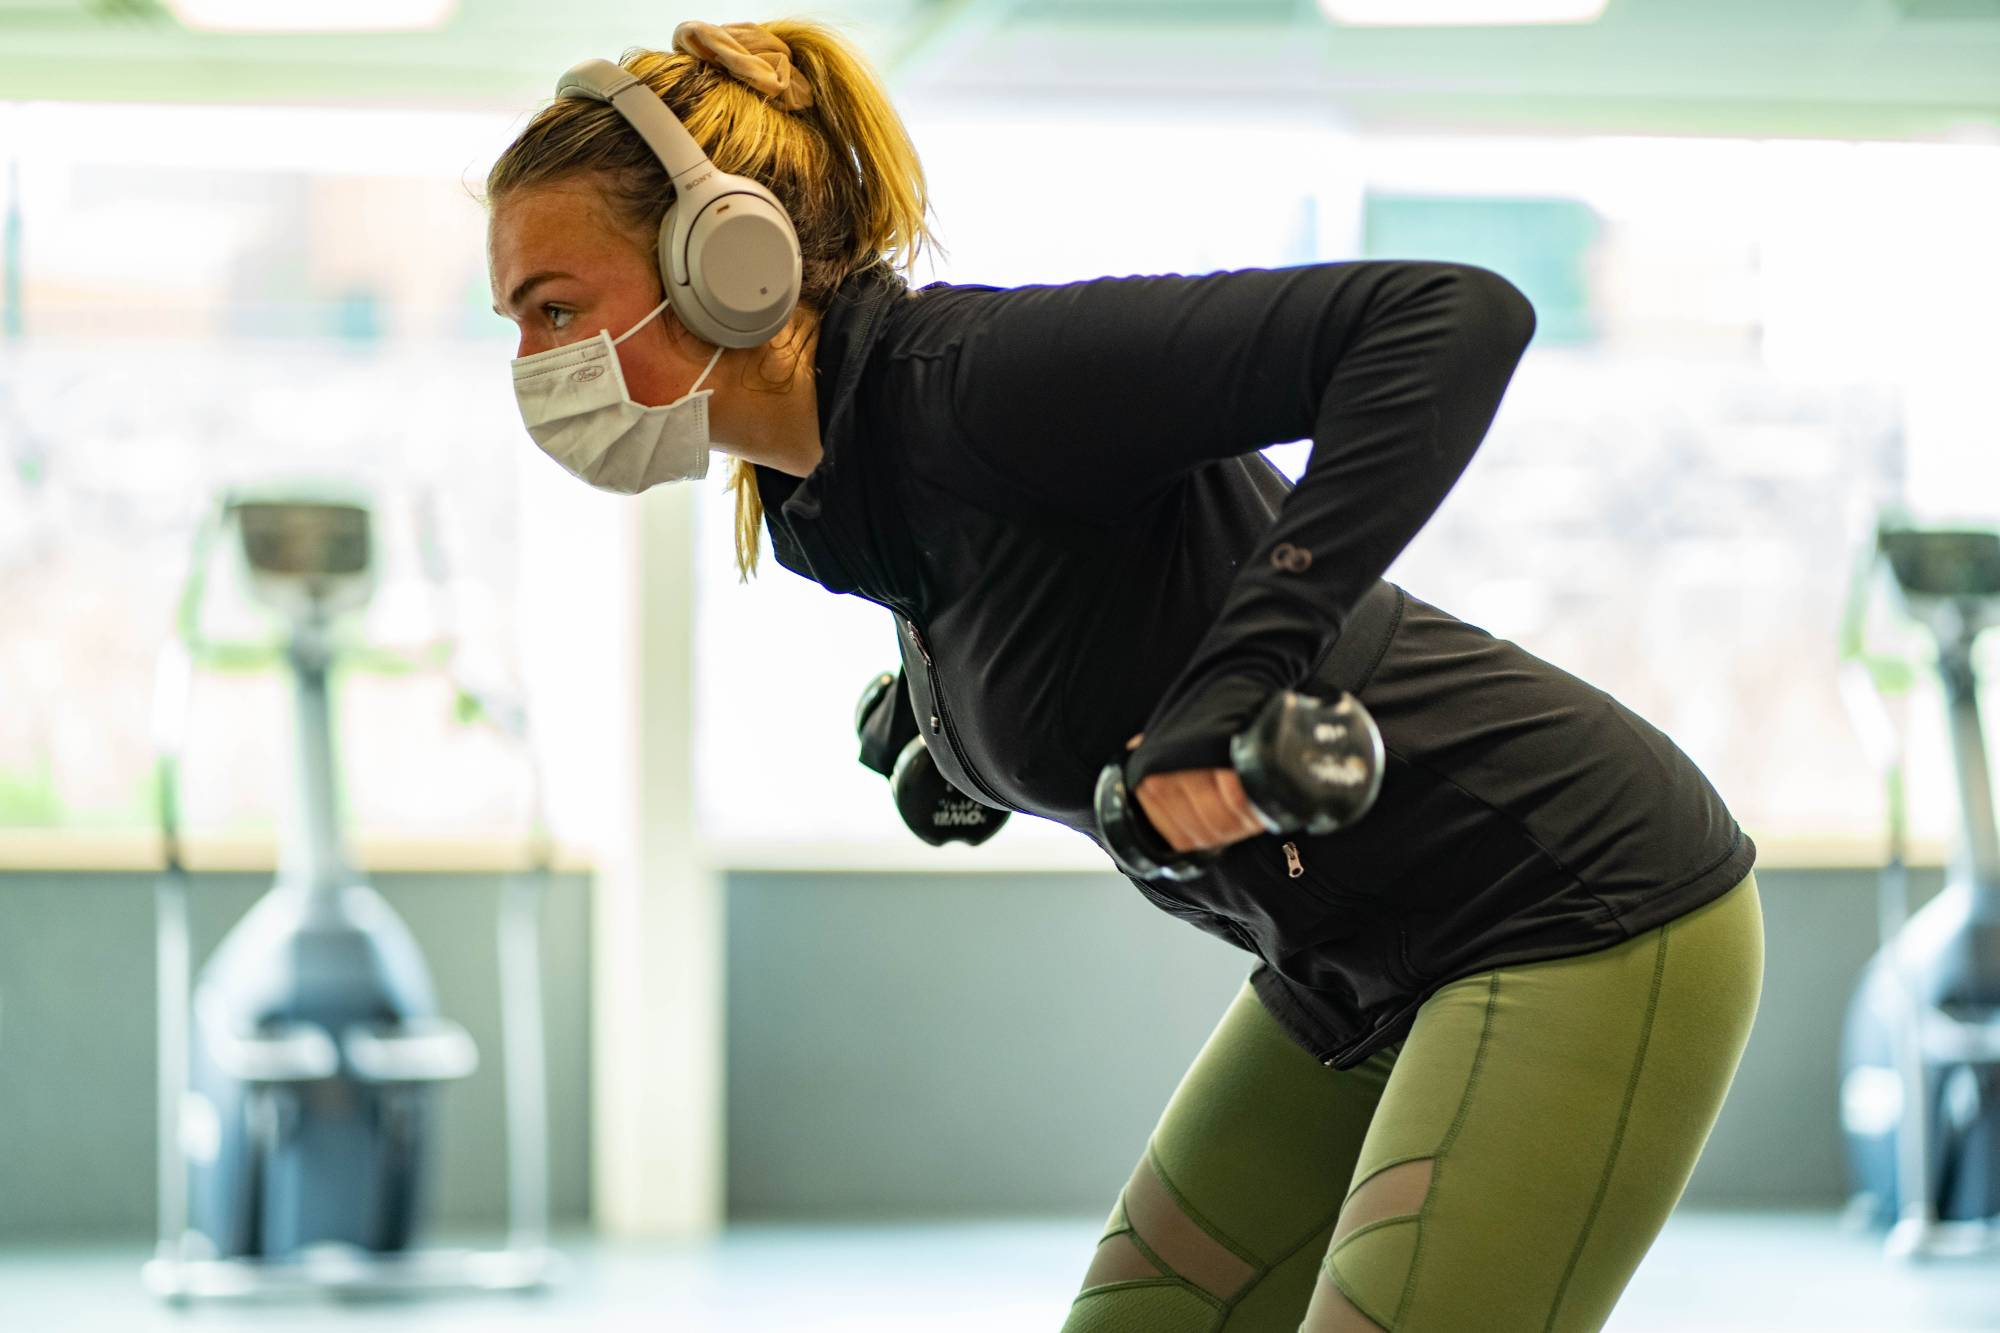 Exercising with Face Covering in Rec Center